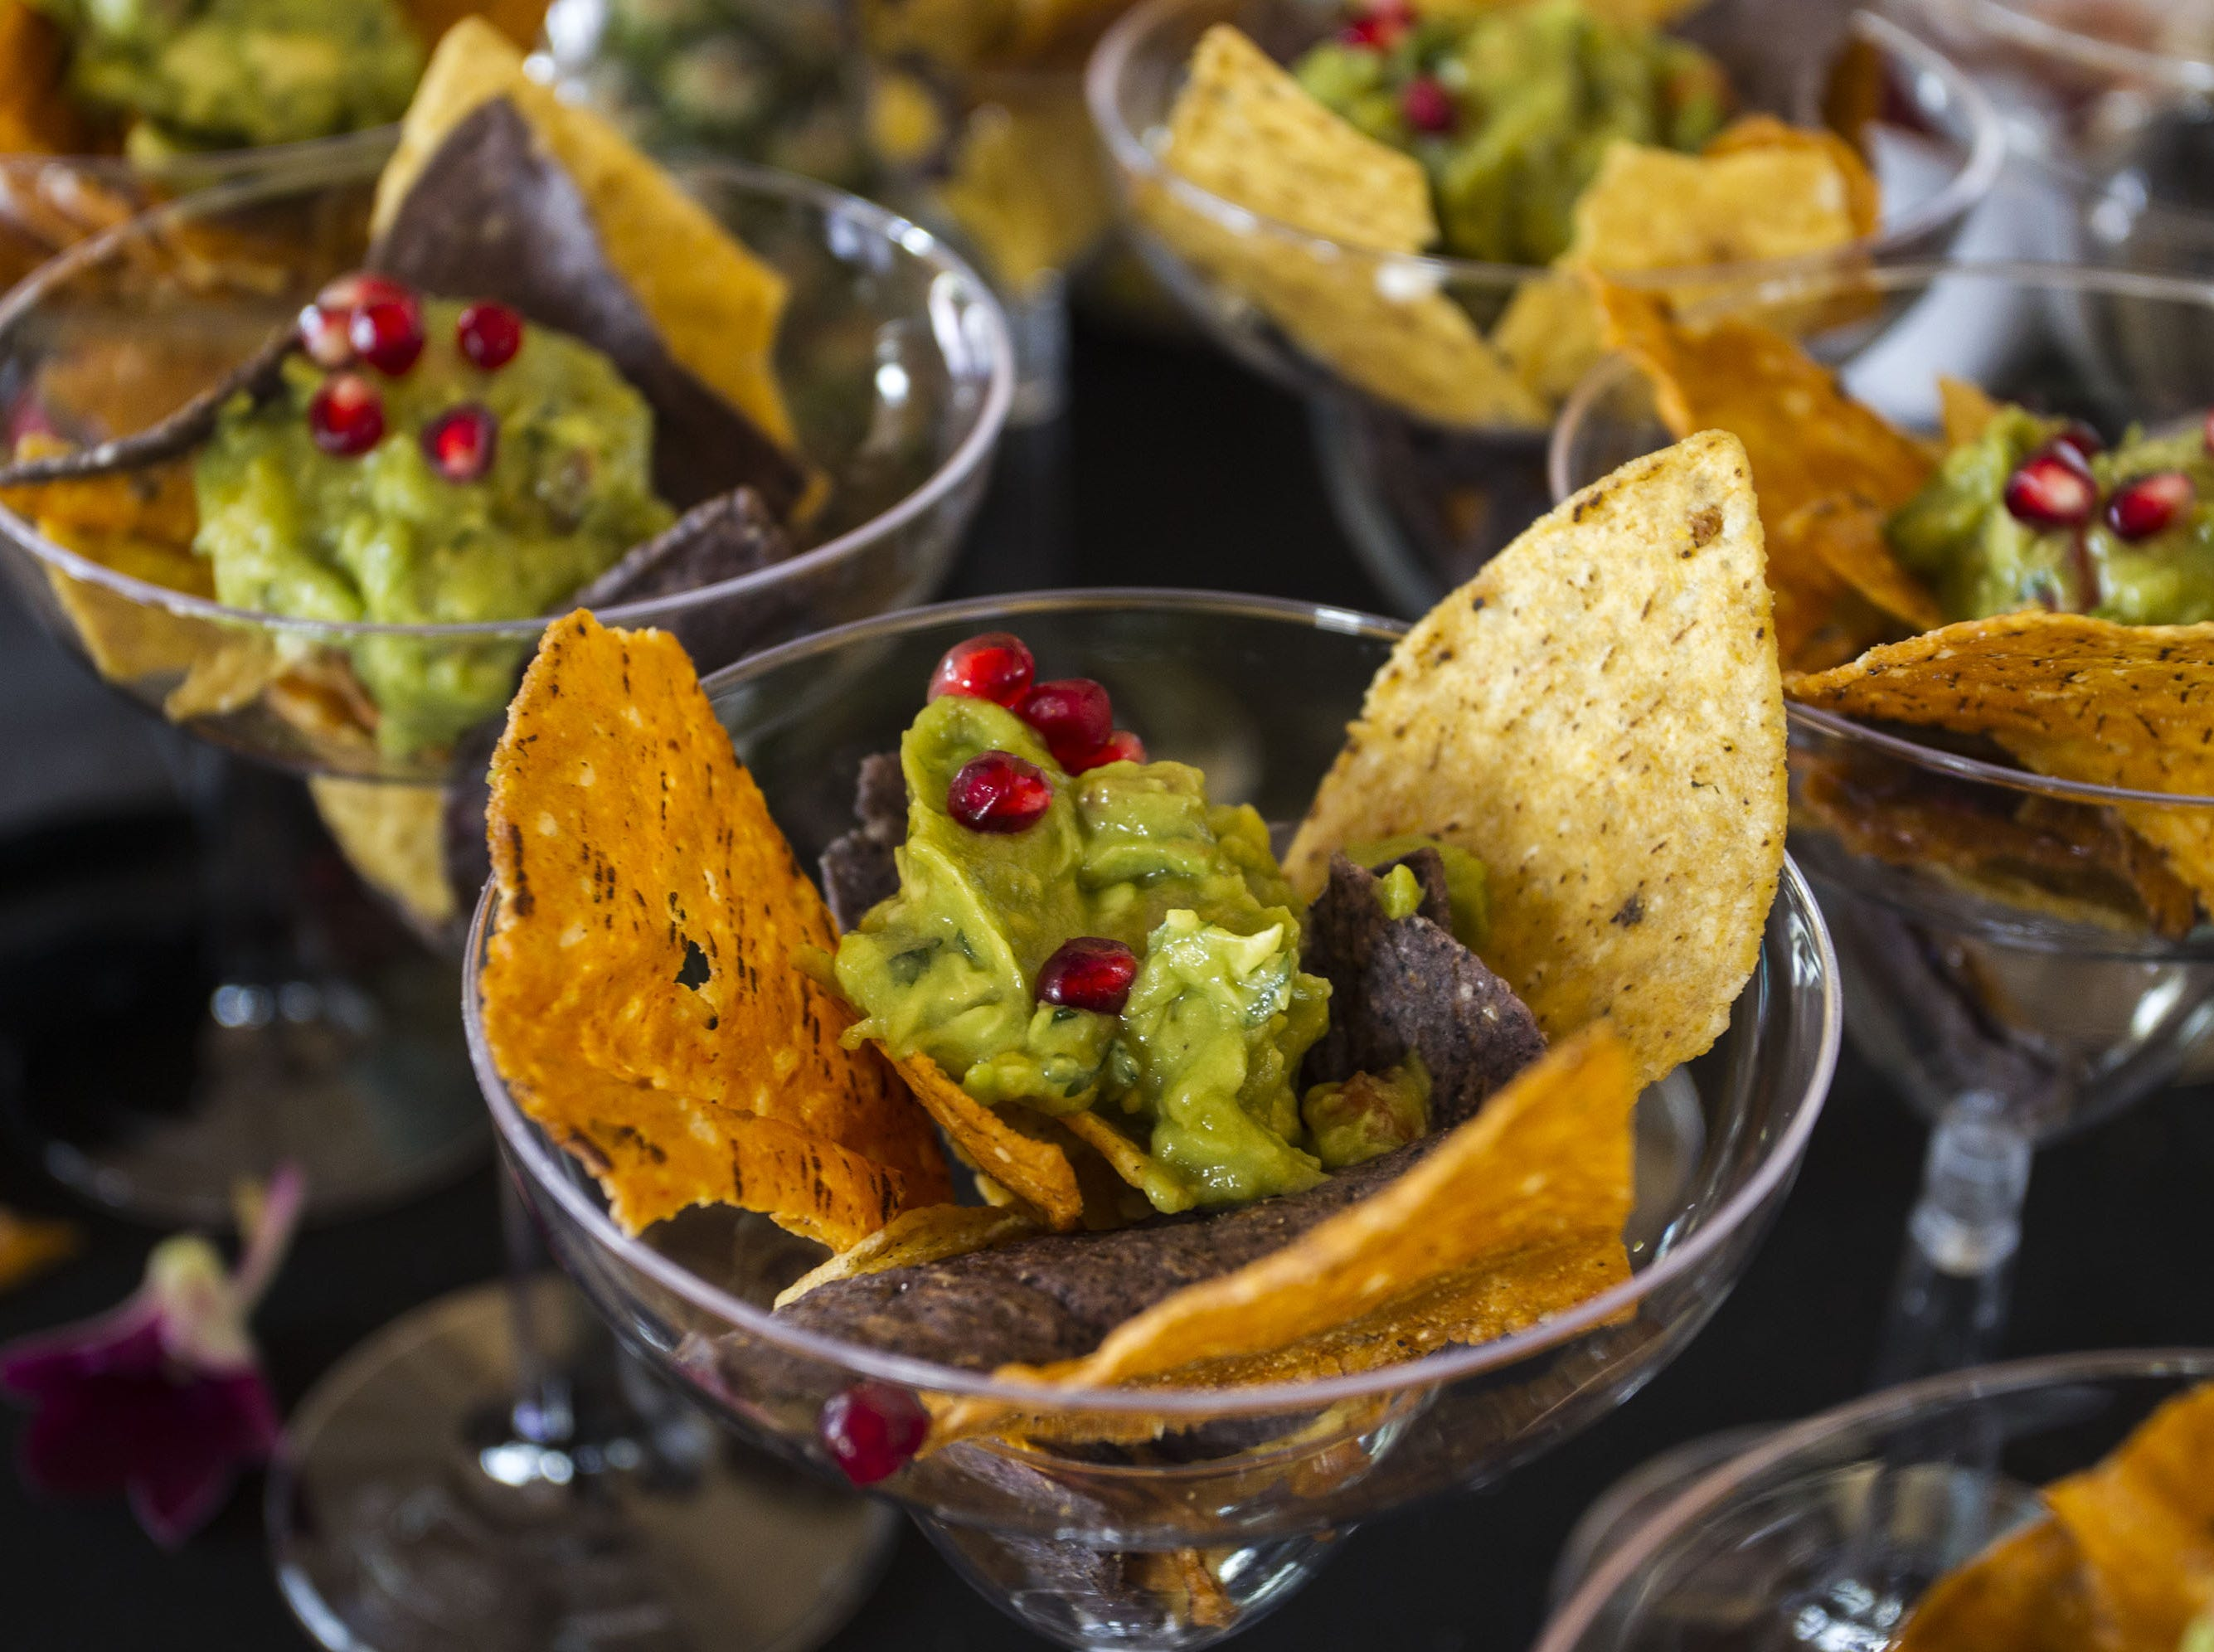 Guacamole and pomegranates top tortilla chips in the VIP area during the azcentral Wine & Food Experience at WestWorld of Scottsdale, Sunday, Nov. 4, 2018.